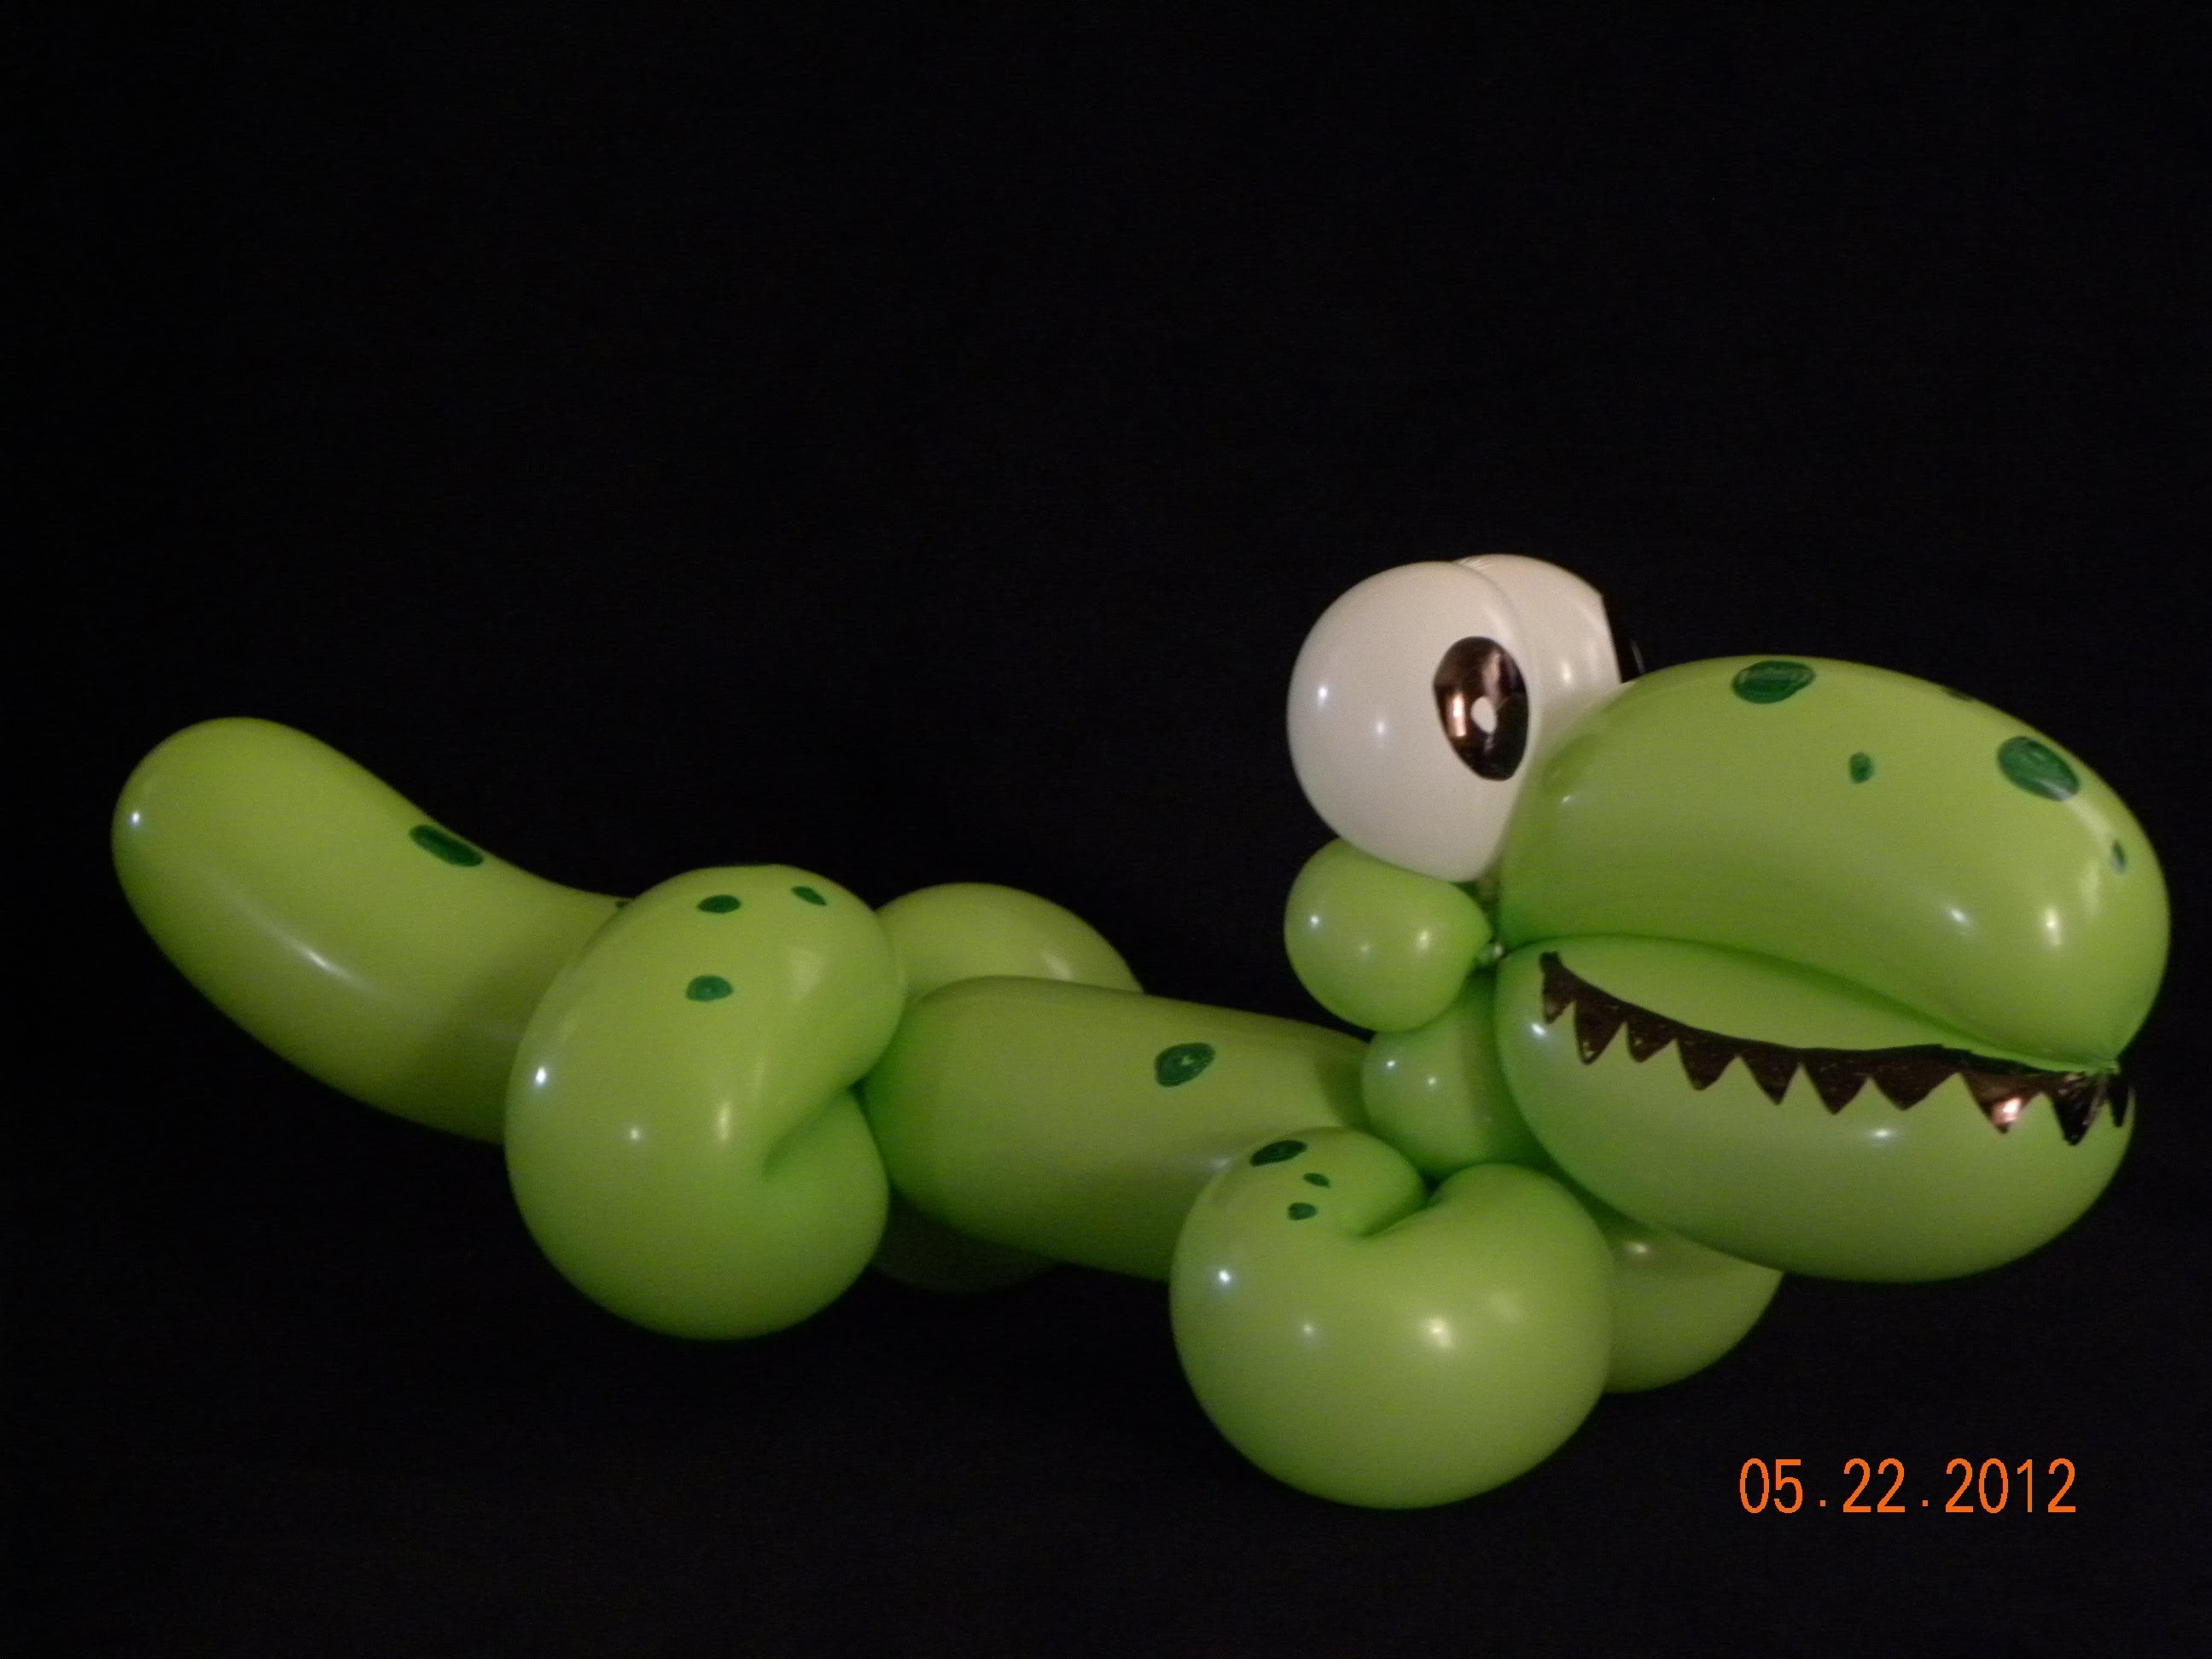 COMO HACER UN COCODRILO.-  HOW TO MAKE A CROCODILE.